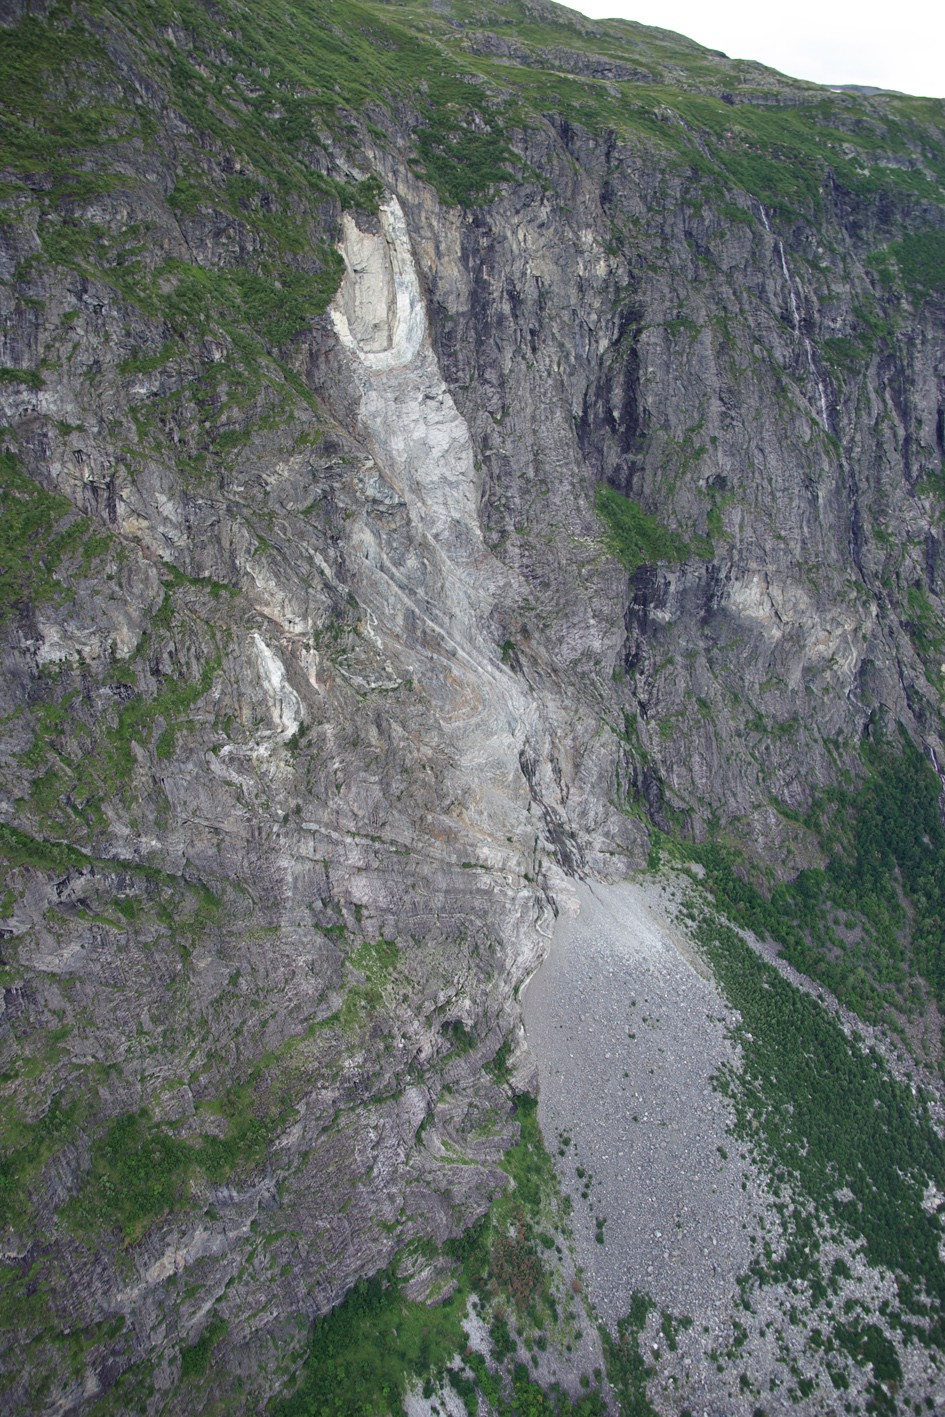 Figure 2: Example of a rockslide that occurred in 1992, by Jimdalen, near Tafjorden. A large block fell (notice the light area) from the extremely steep cliff and formed a large talus deposig along the foot of the cliff. (Photo: Aline Saintot, NGU).